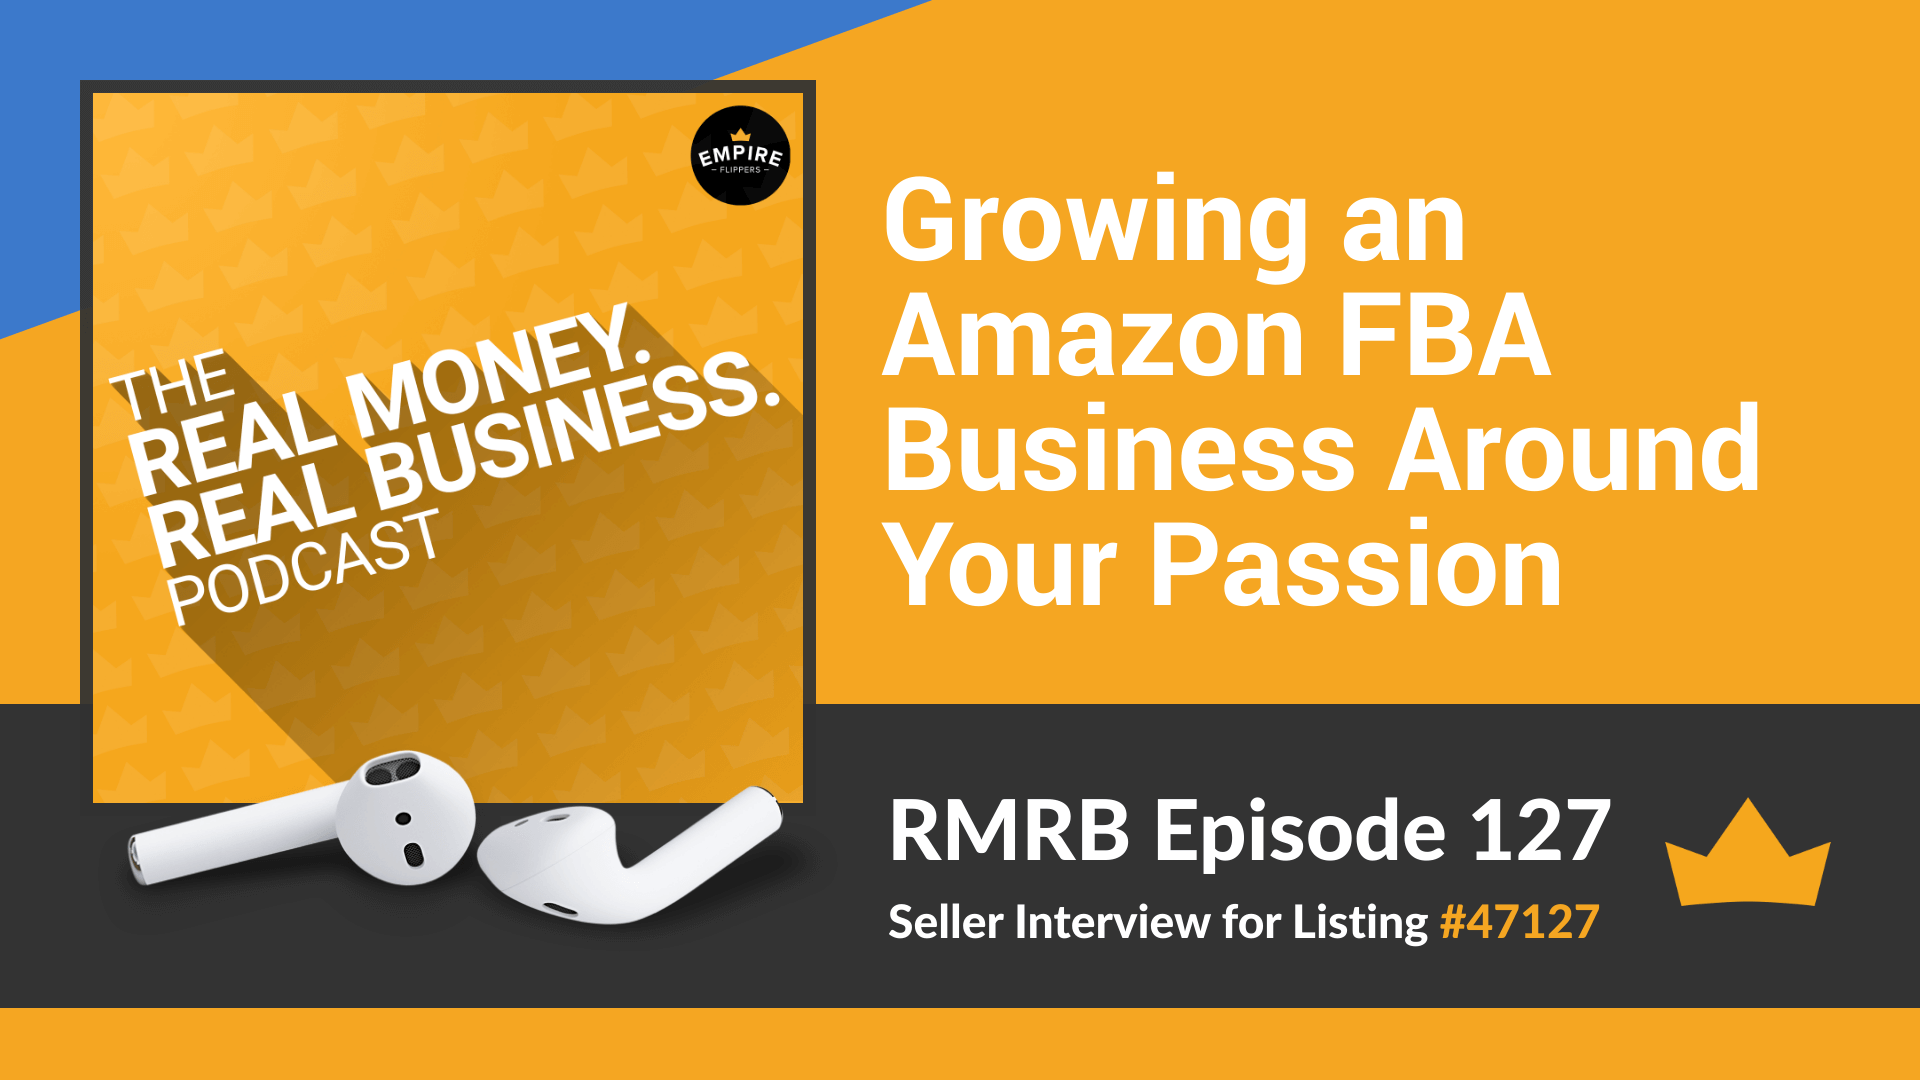 RMRB 127 - Growing an Amazon FBA Business Around Your Passion